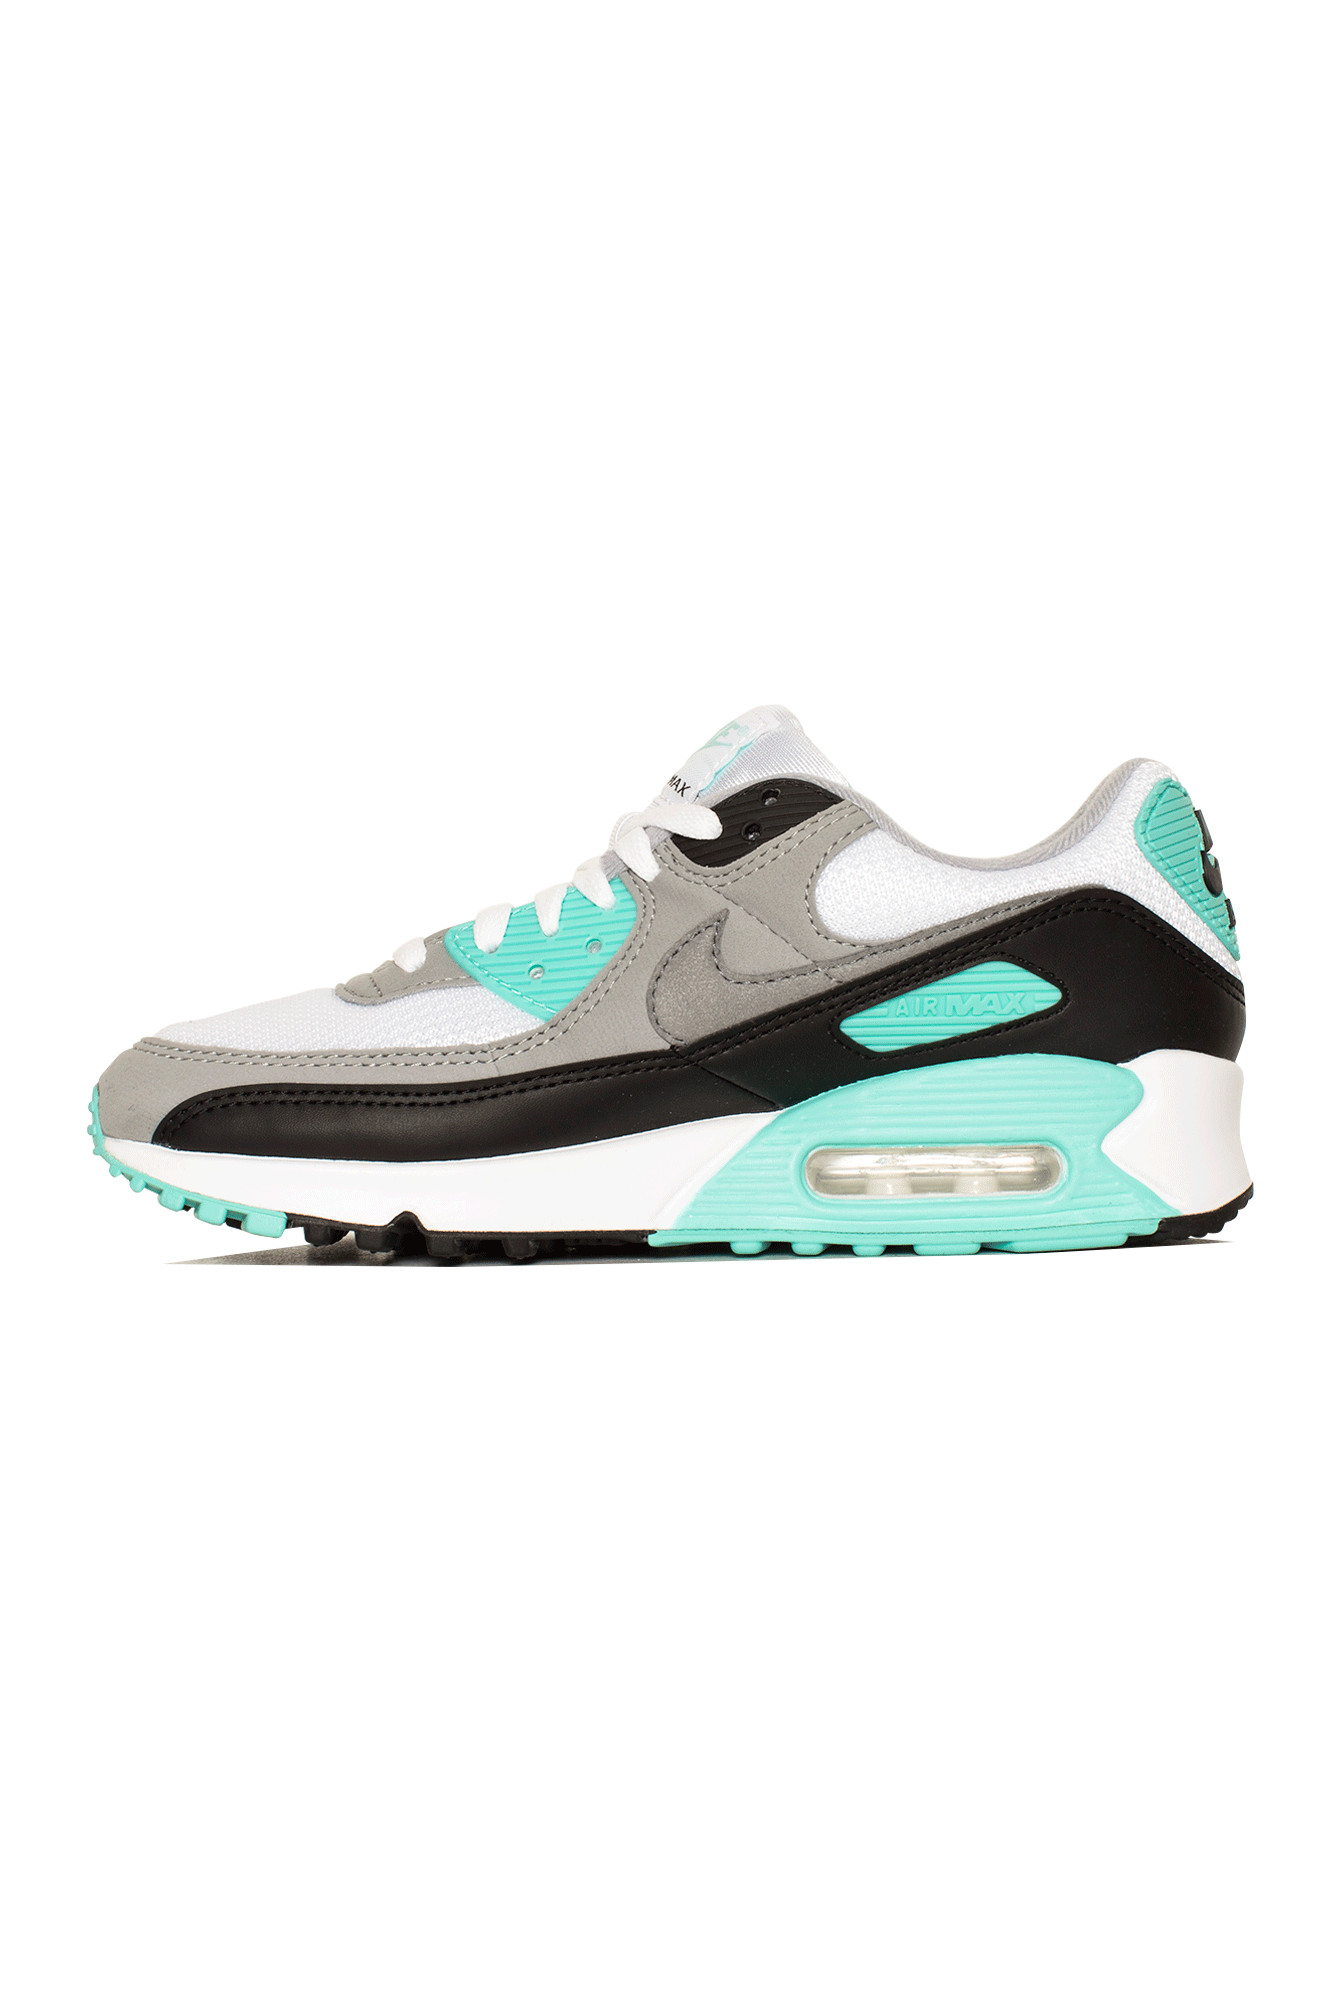 Air Max 90 Sneaker in Blue,White. Size 5 (also in 5.5,6.5).